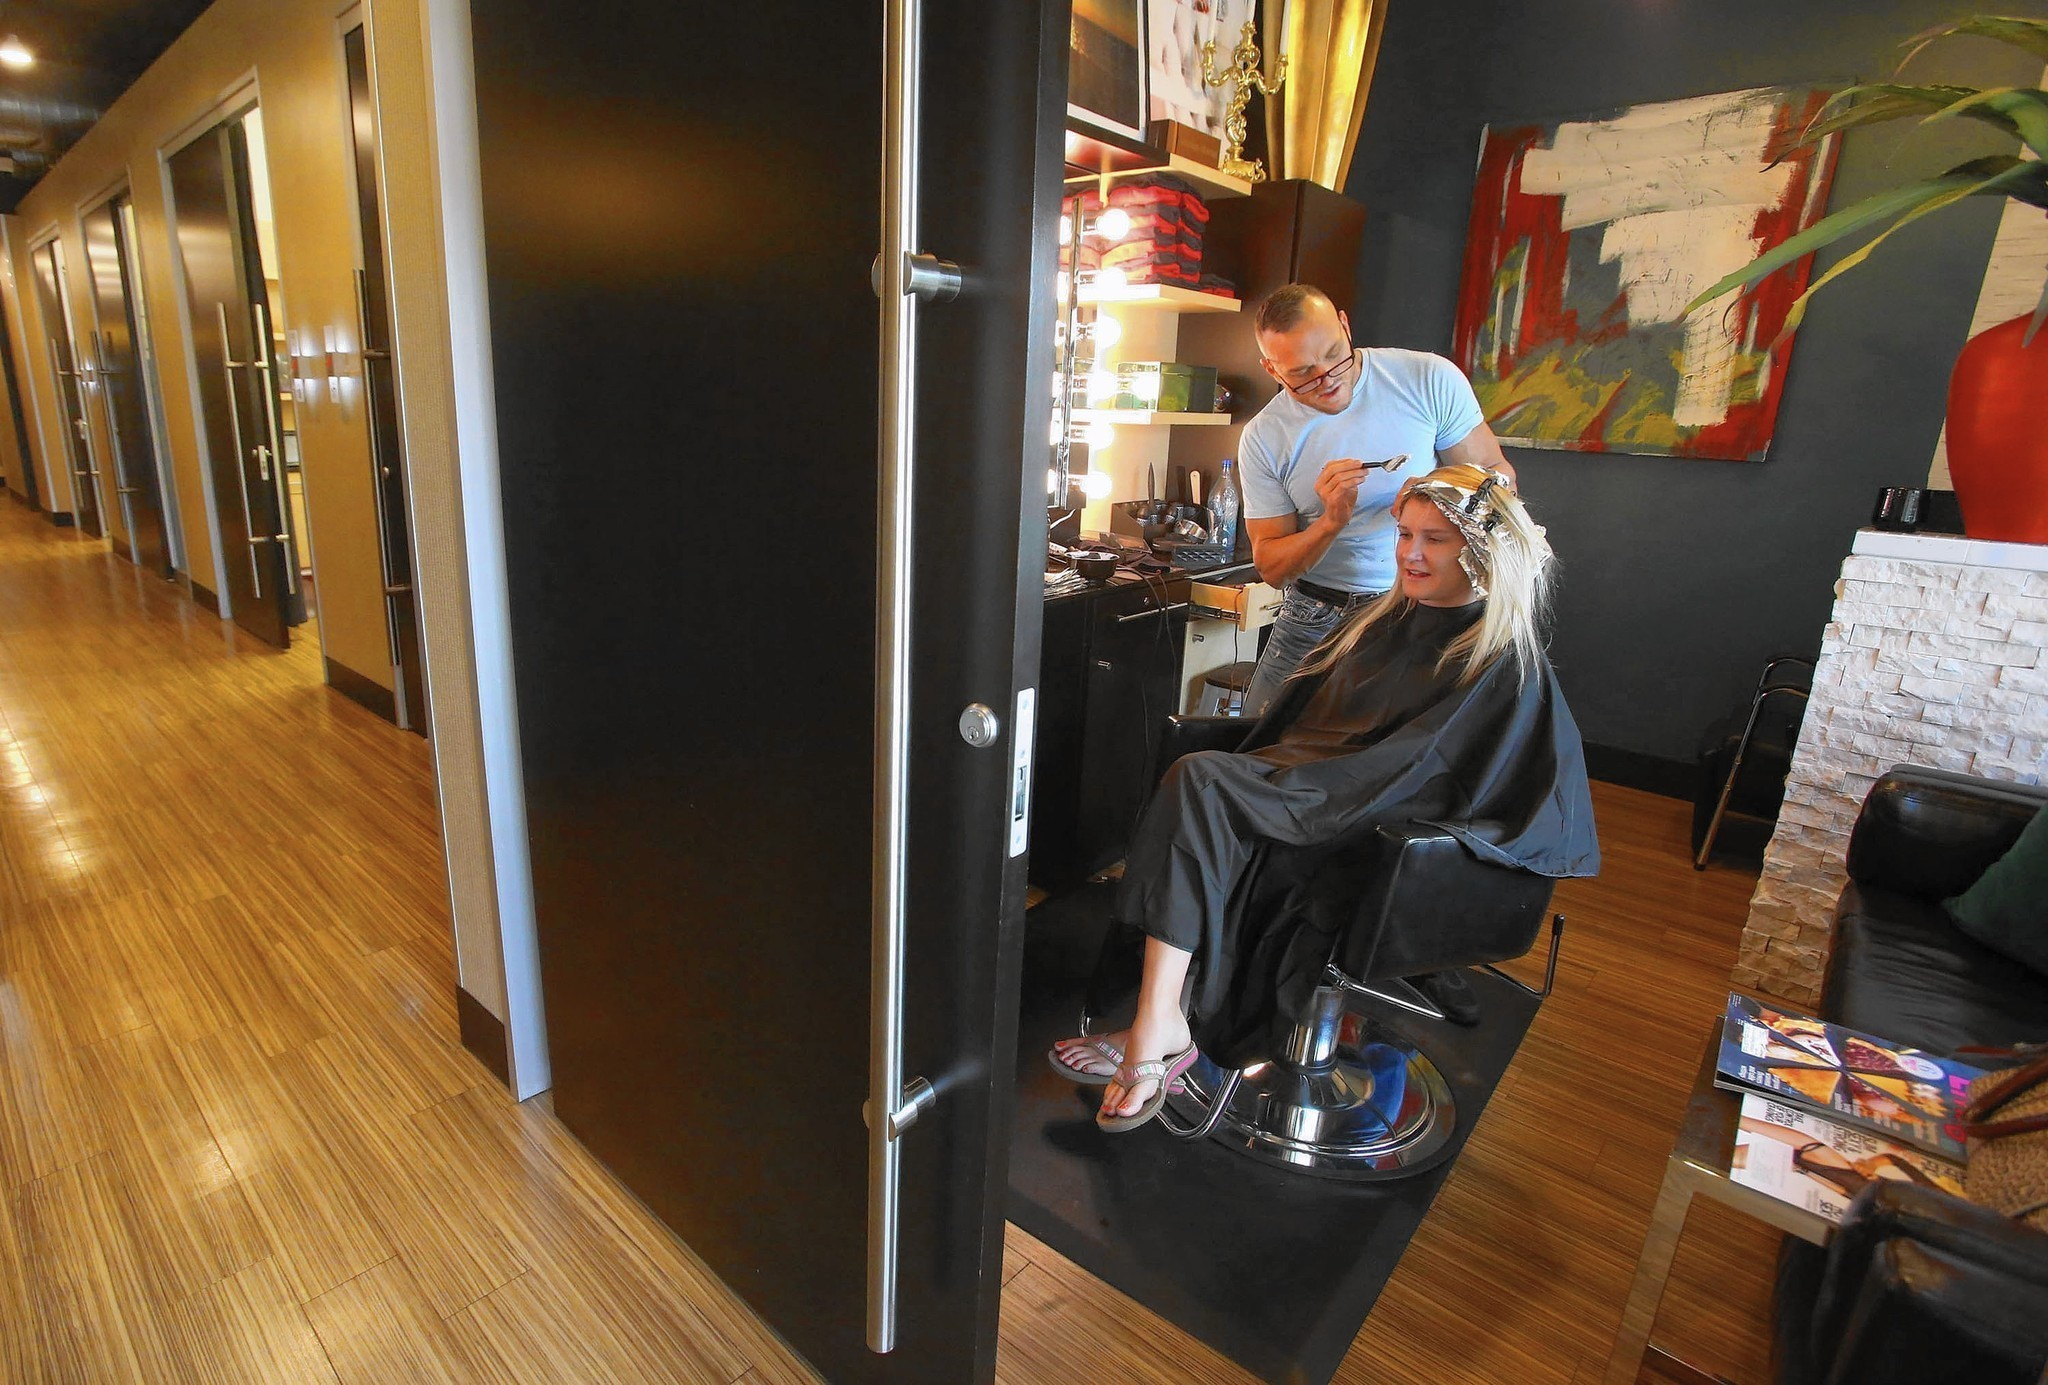 small personalized salons are emerging trend in central florida